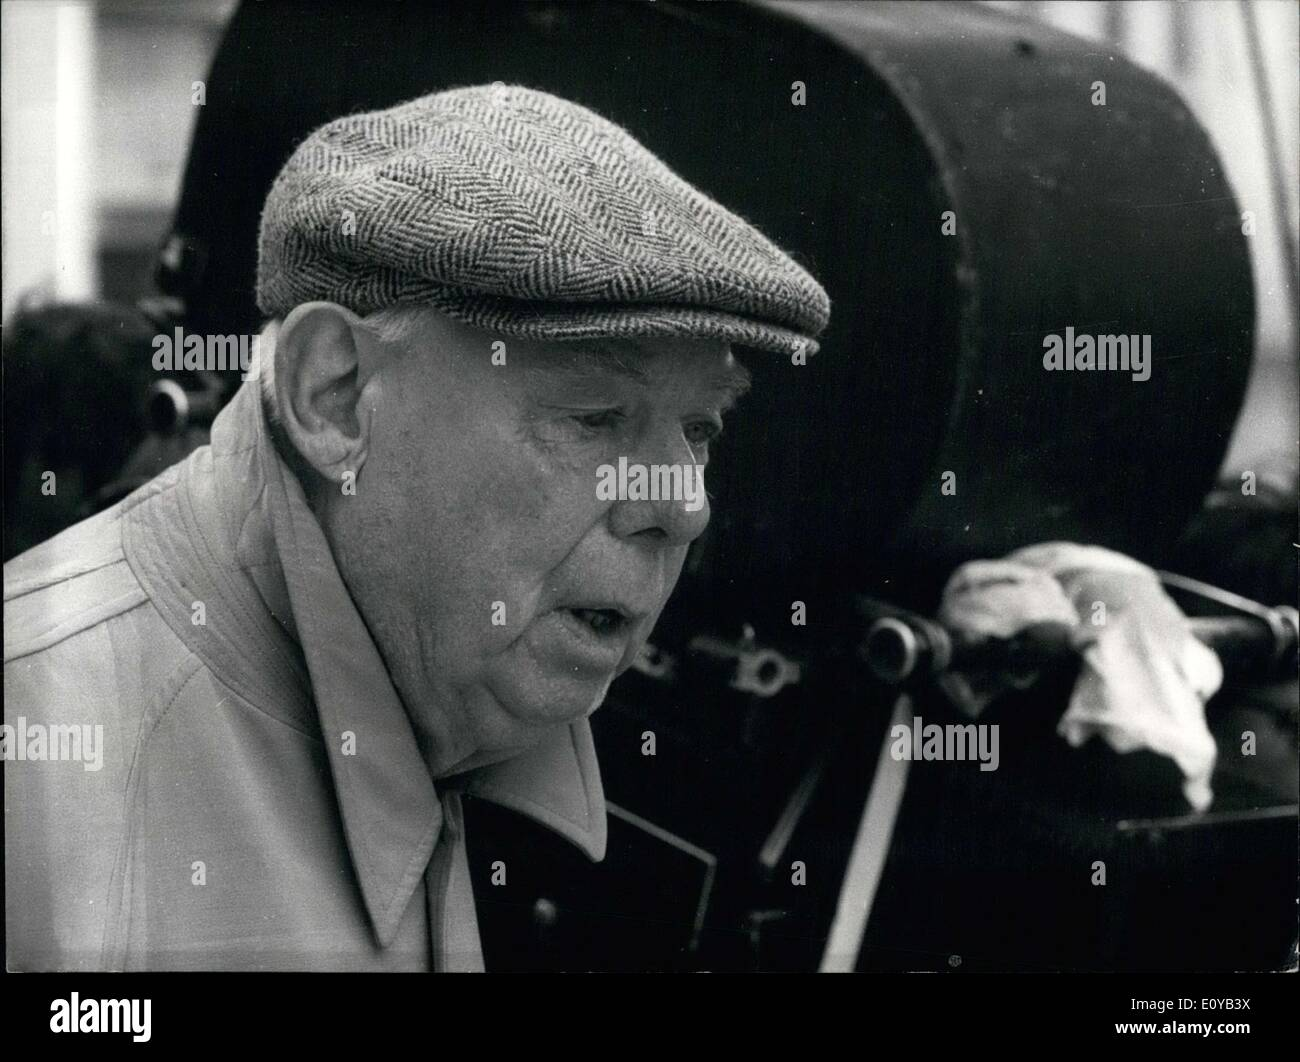 Jul. 09, 1969 - He is filming a TV program that will consist of four sketches, which will also eventually be show in movie theaters as well. - Stock Image